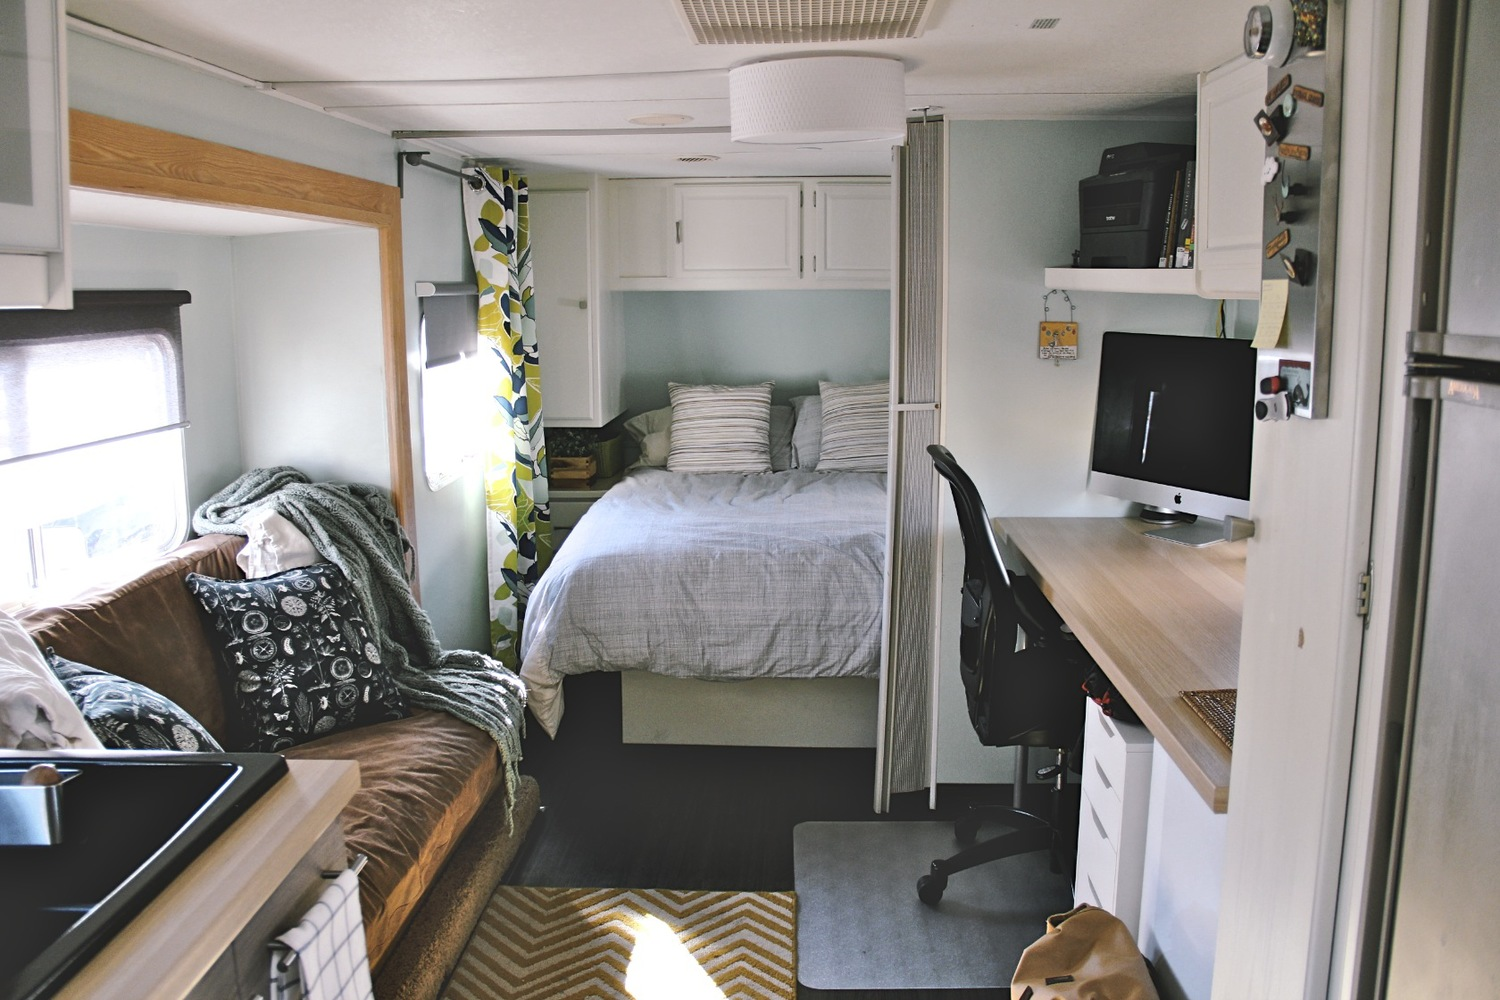 RV Remodel: 27 Amazing RV Remodel Ideas You Need to See! - RVshare com